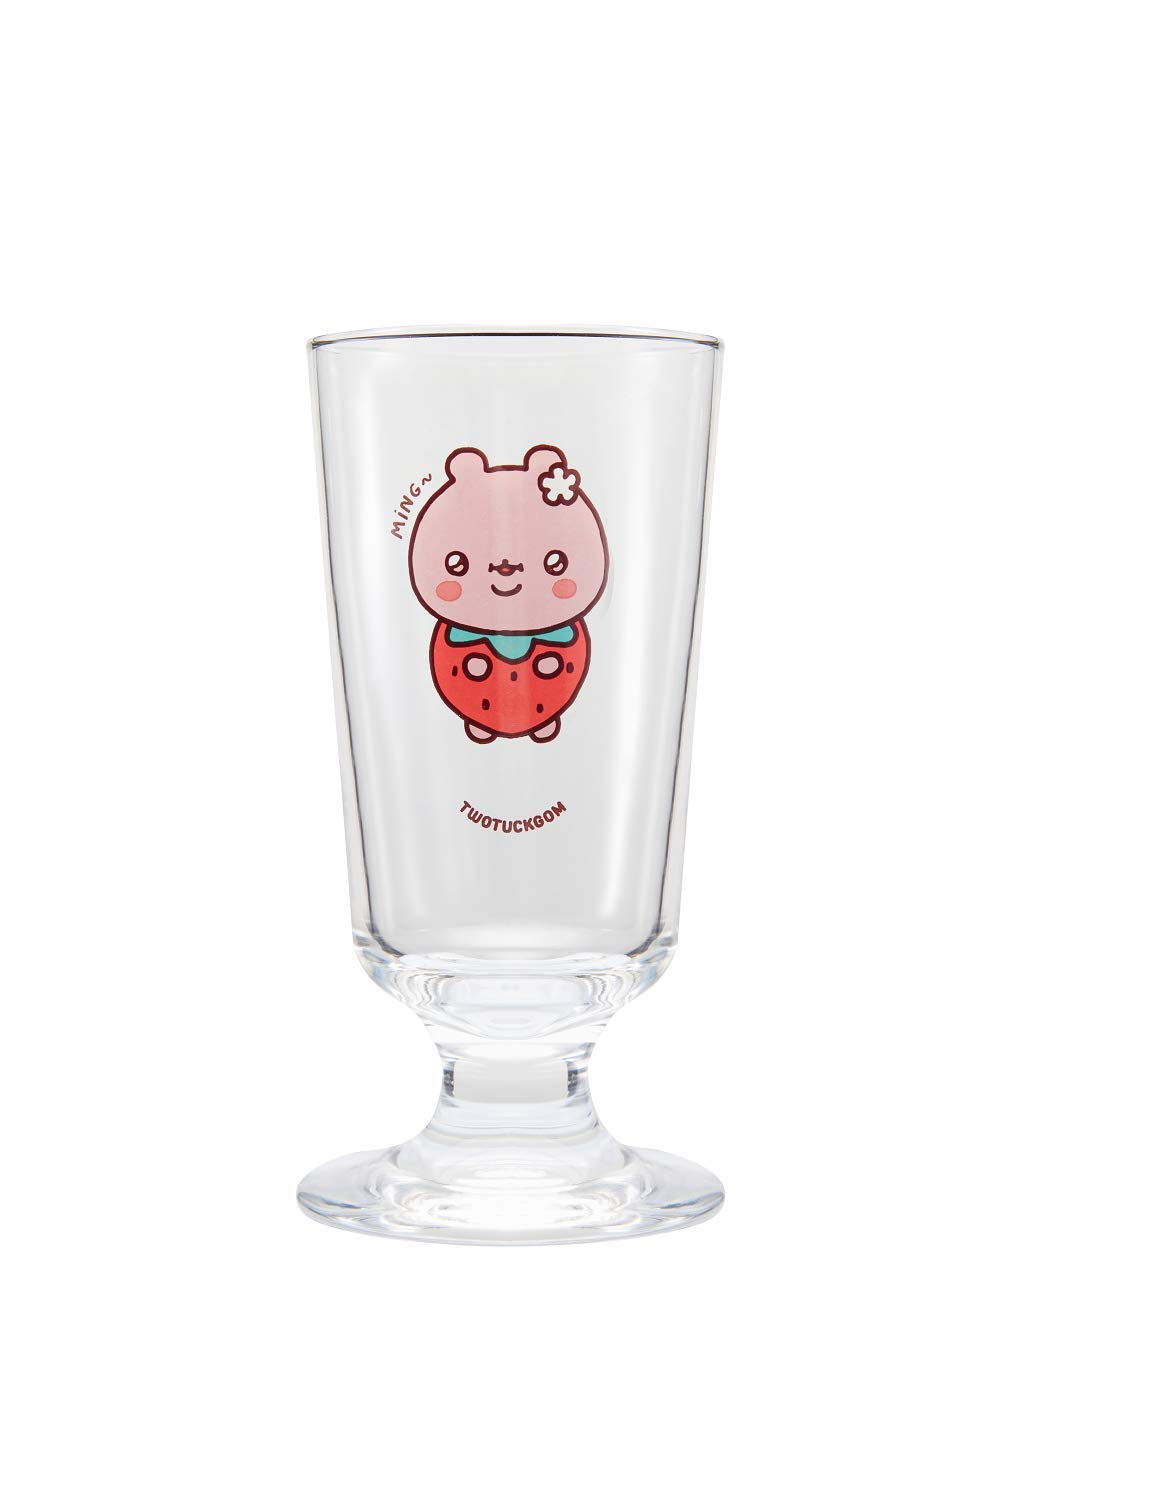 TWOTUCKGOM Collaboration with MONSTA X Goblet Glass - MINGGOM - TTG 9.97 oz Drinkware Made of Glass for Hot Cold Beverage Iced Tea Any Drinks Juice